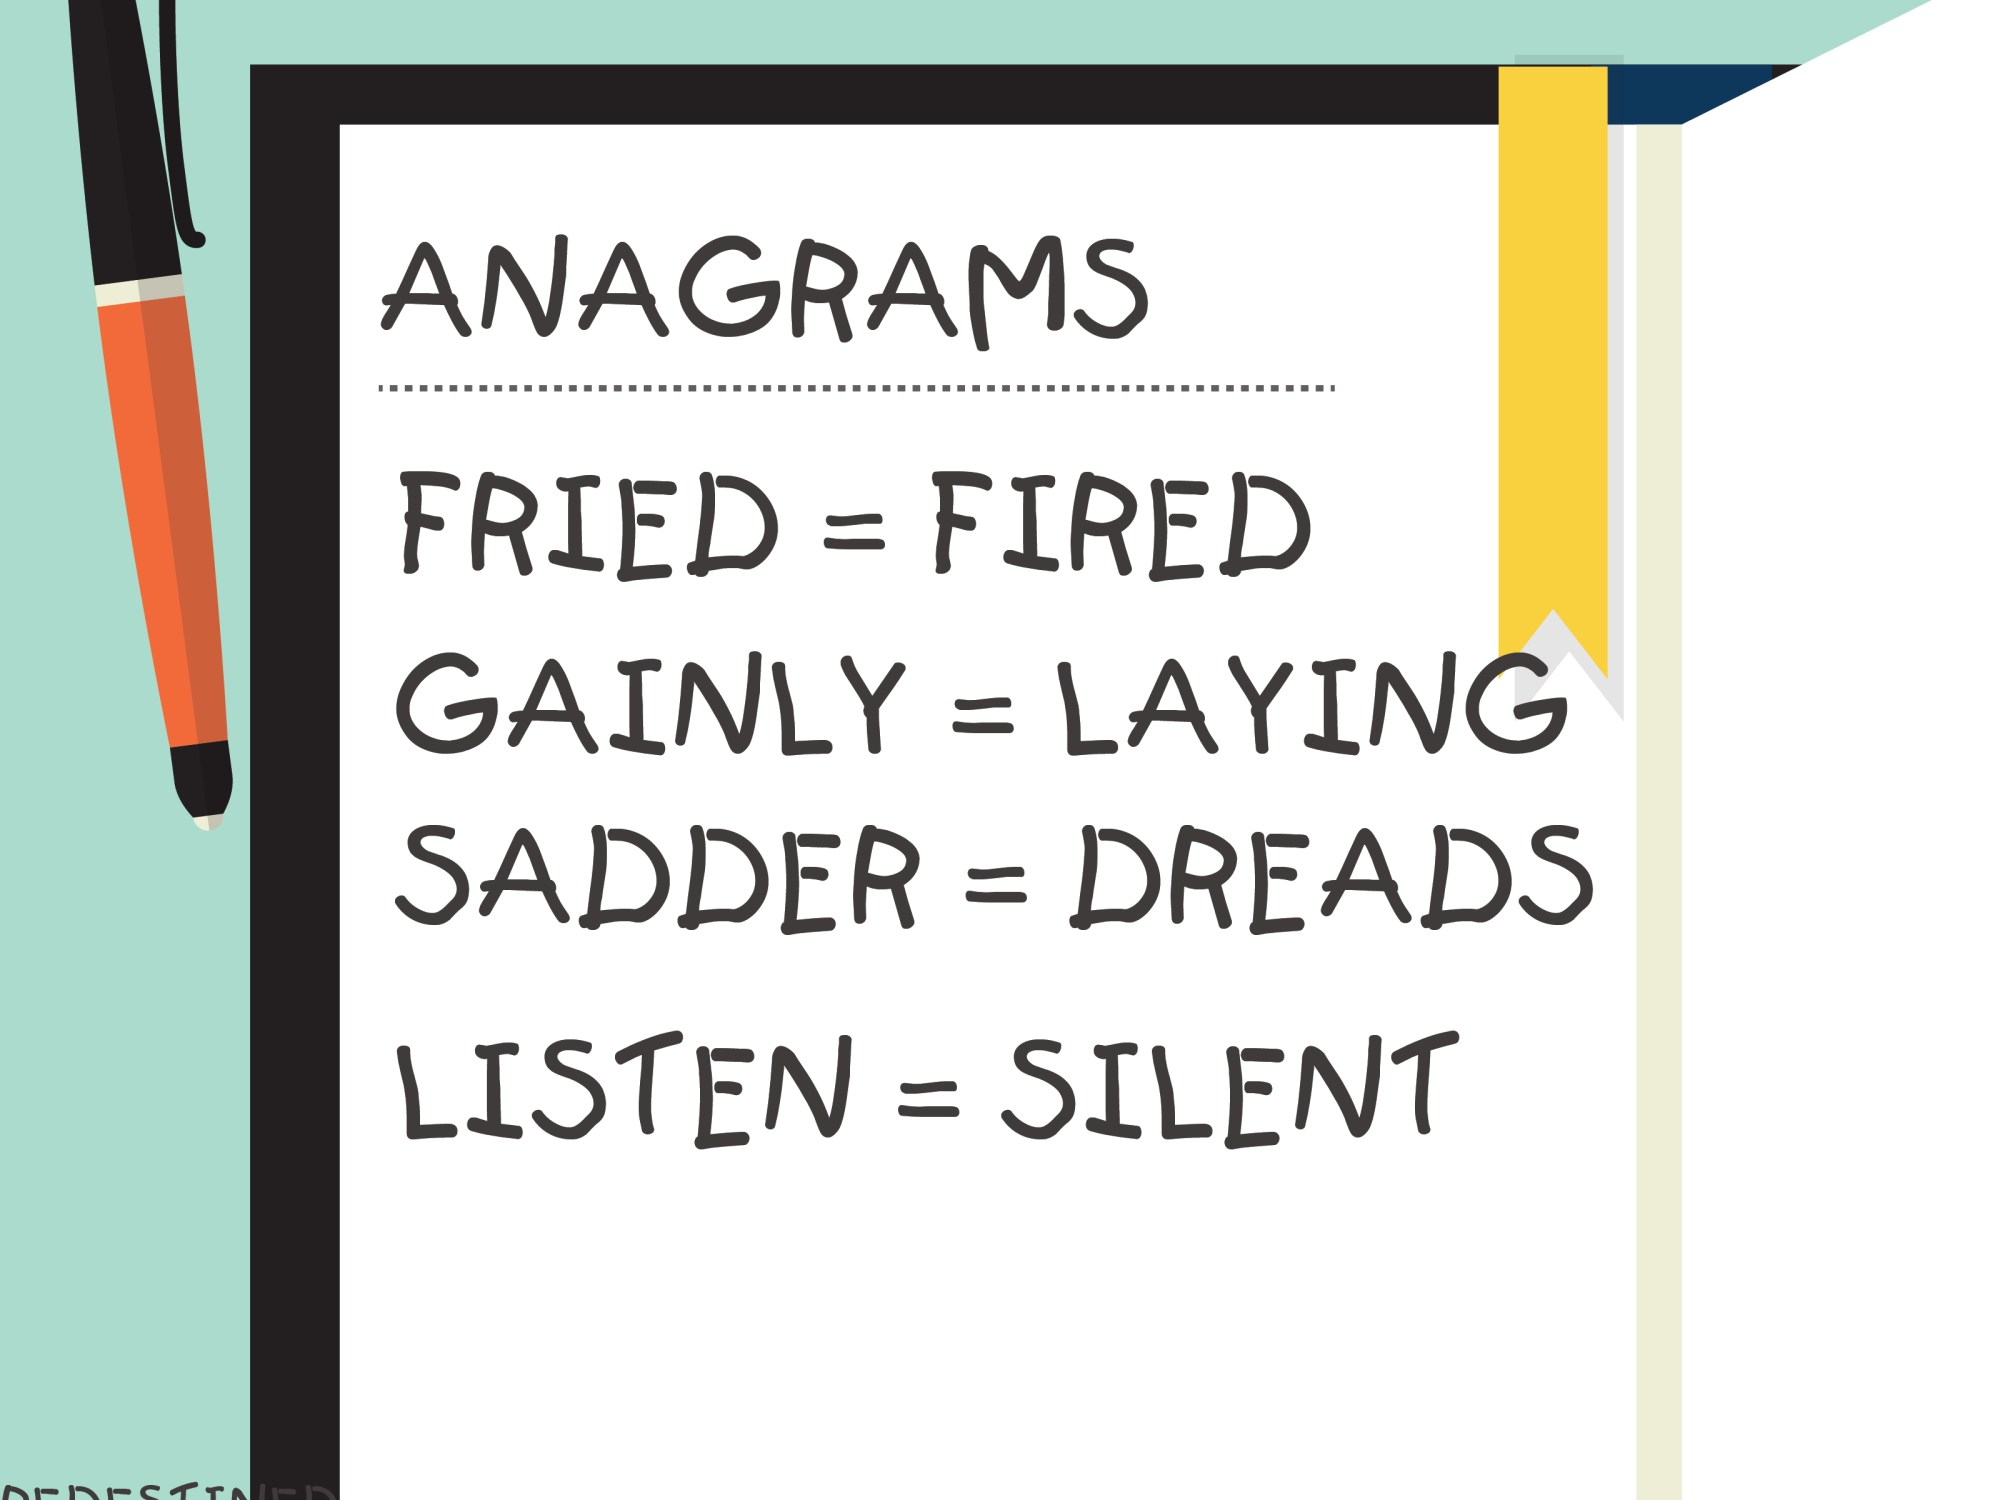 hight resolution of 3 Ways to Solve Anagrams Effectively - wikiHow